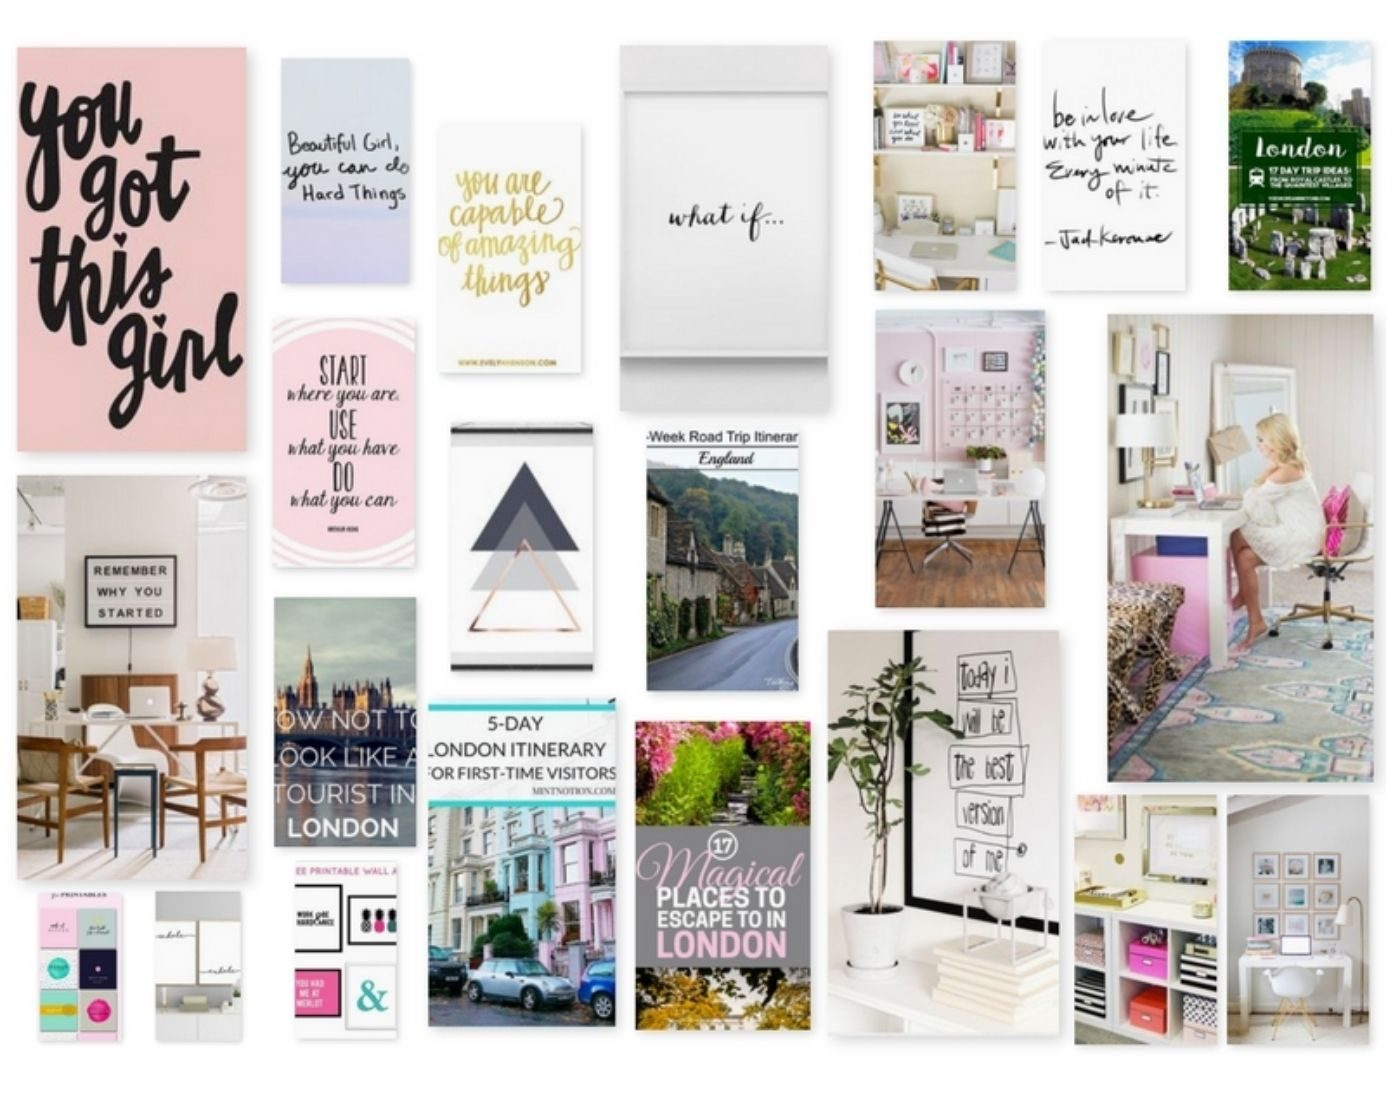 Vision Board_Mood Board_Digital Board_Pinterest Board_Idea